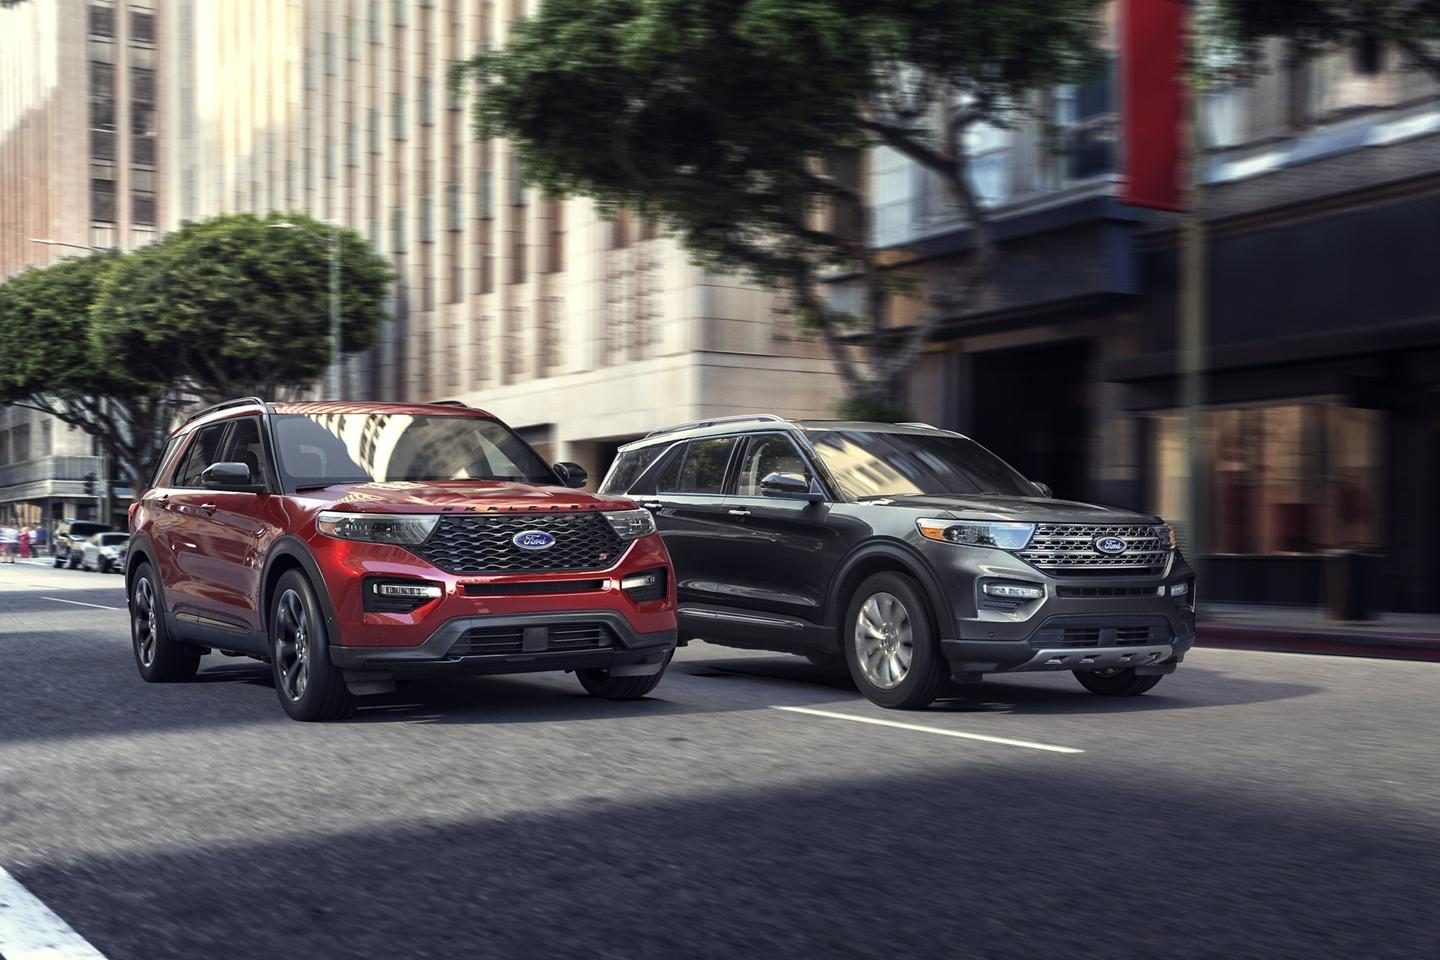 Ford All New Explorer image